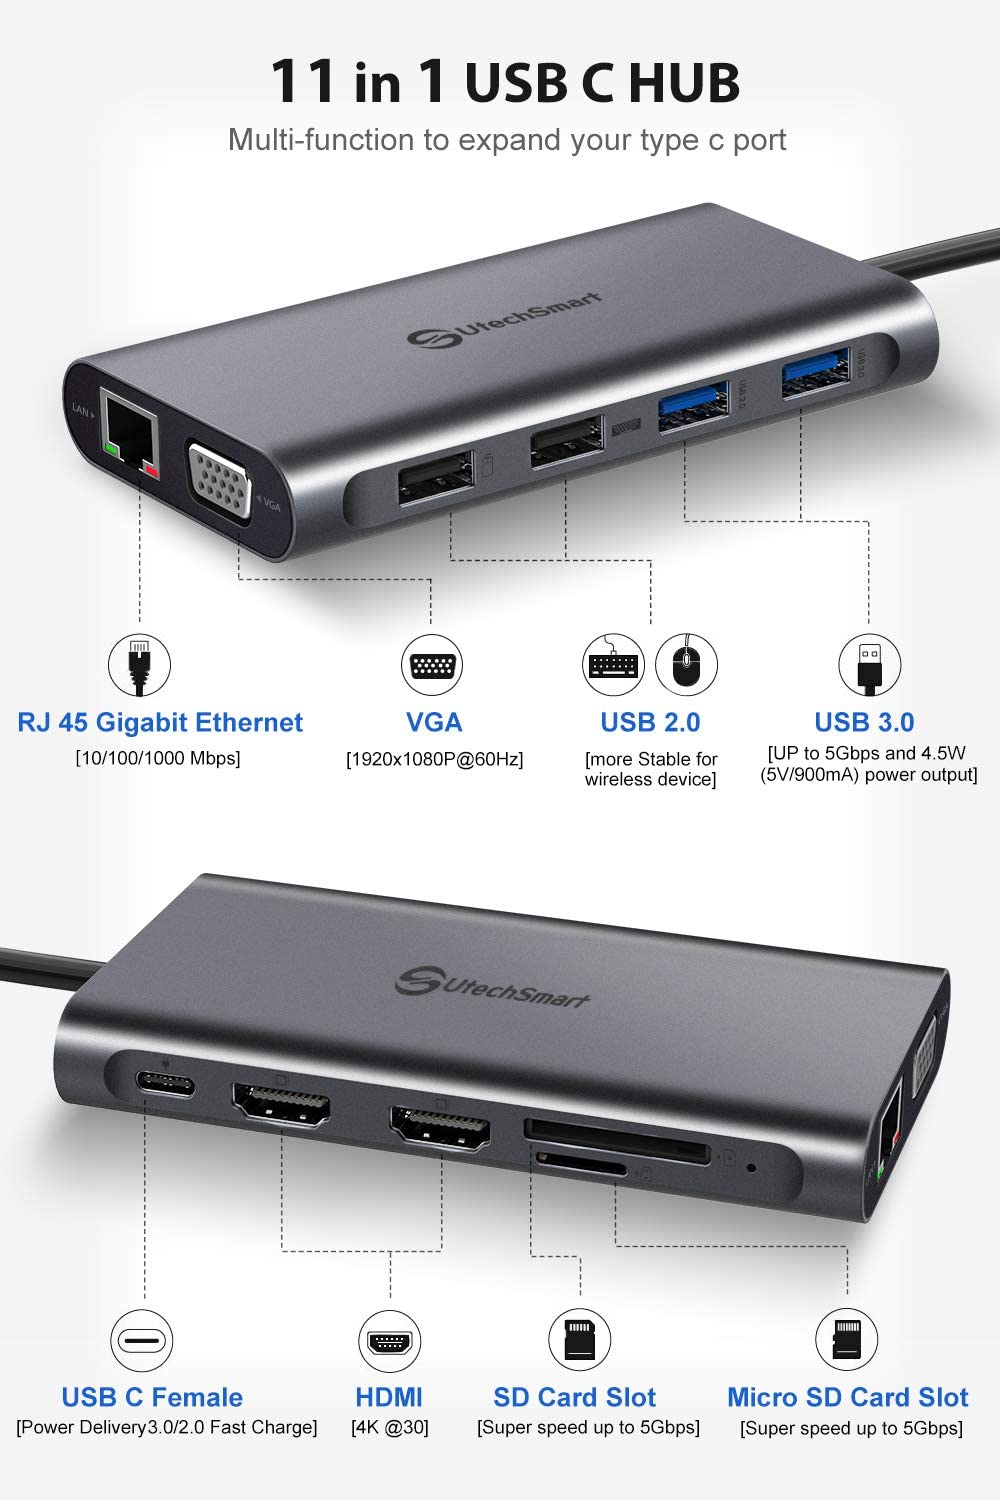 USB C Hub, UtechSmart Triple Display USB Type C Adapter Docking Station with 2 HDMI, VGA, Power Delivery Type C Port,SD TF Card Reader, 4 USB Ports USB-C Dock Compatible for MacBook, Other USBC Laptop: Computers & Accessories